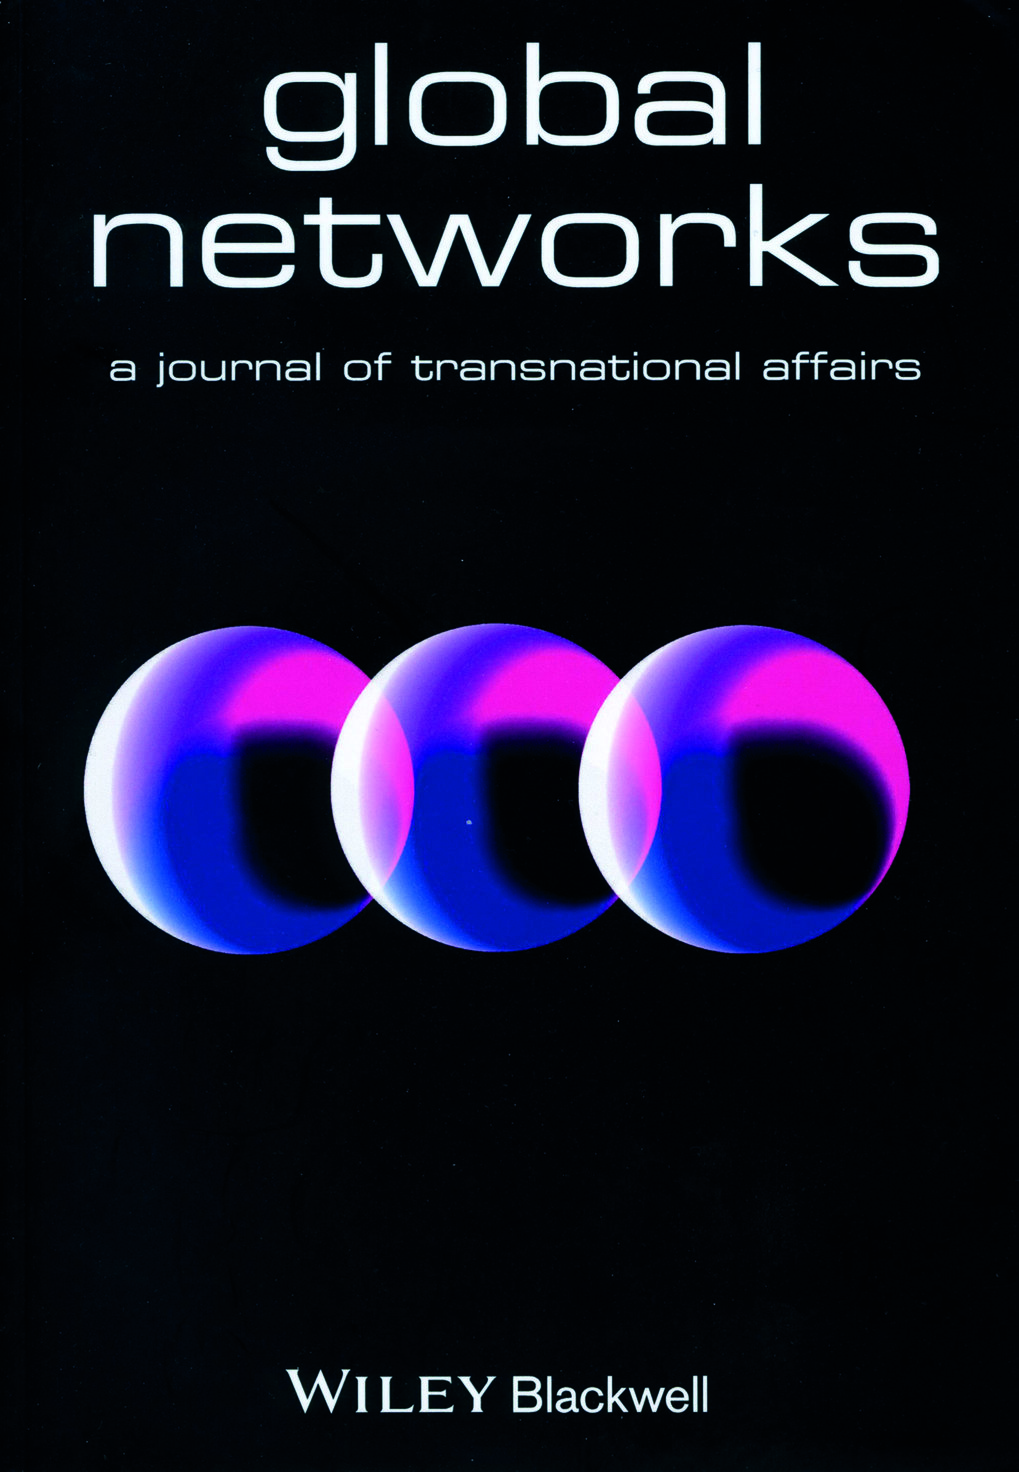 Global Networks Journal